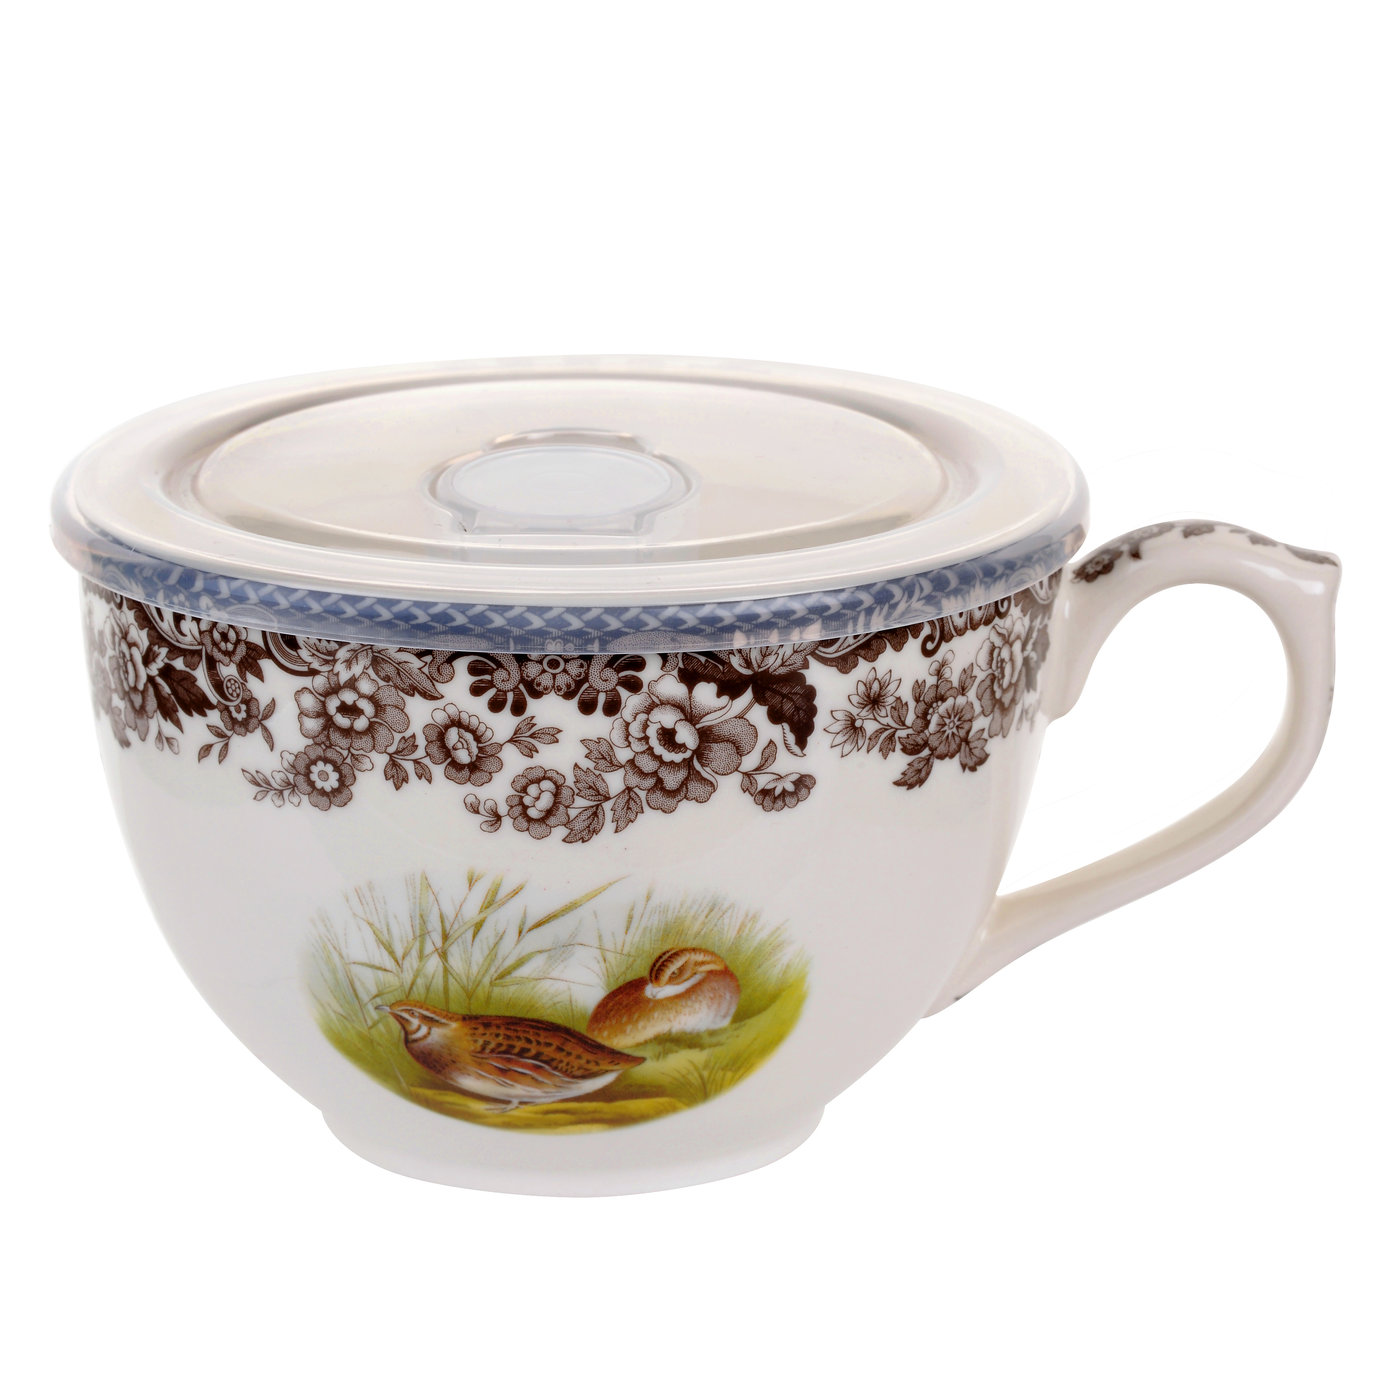 Spode Woodland Jumbo Cup with Lid (Quail) image number 0